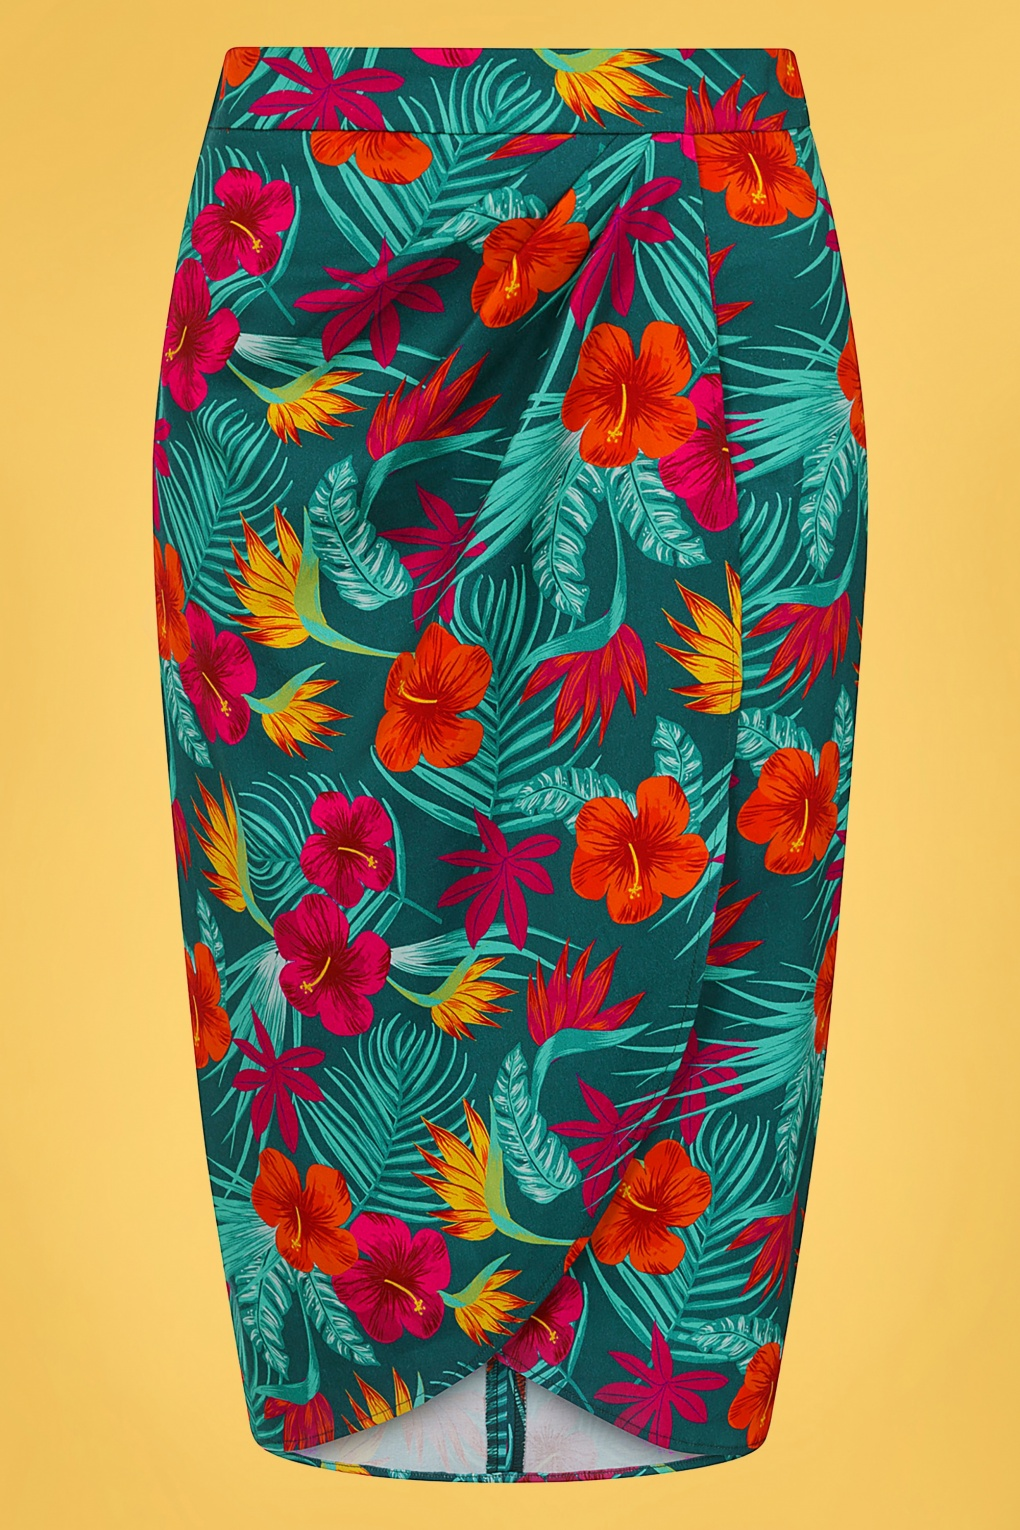 Retro Tiki Dress – Tropical, Hawaiian Dresses 50s Kala Tropico Sarong Skirt in Teal £24.95 AT vintagedancer.com